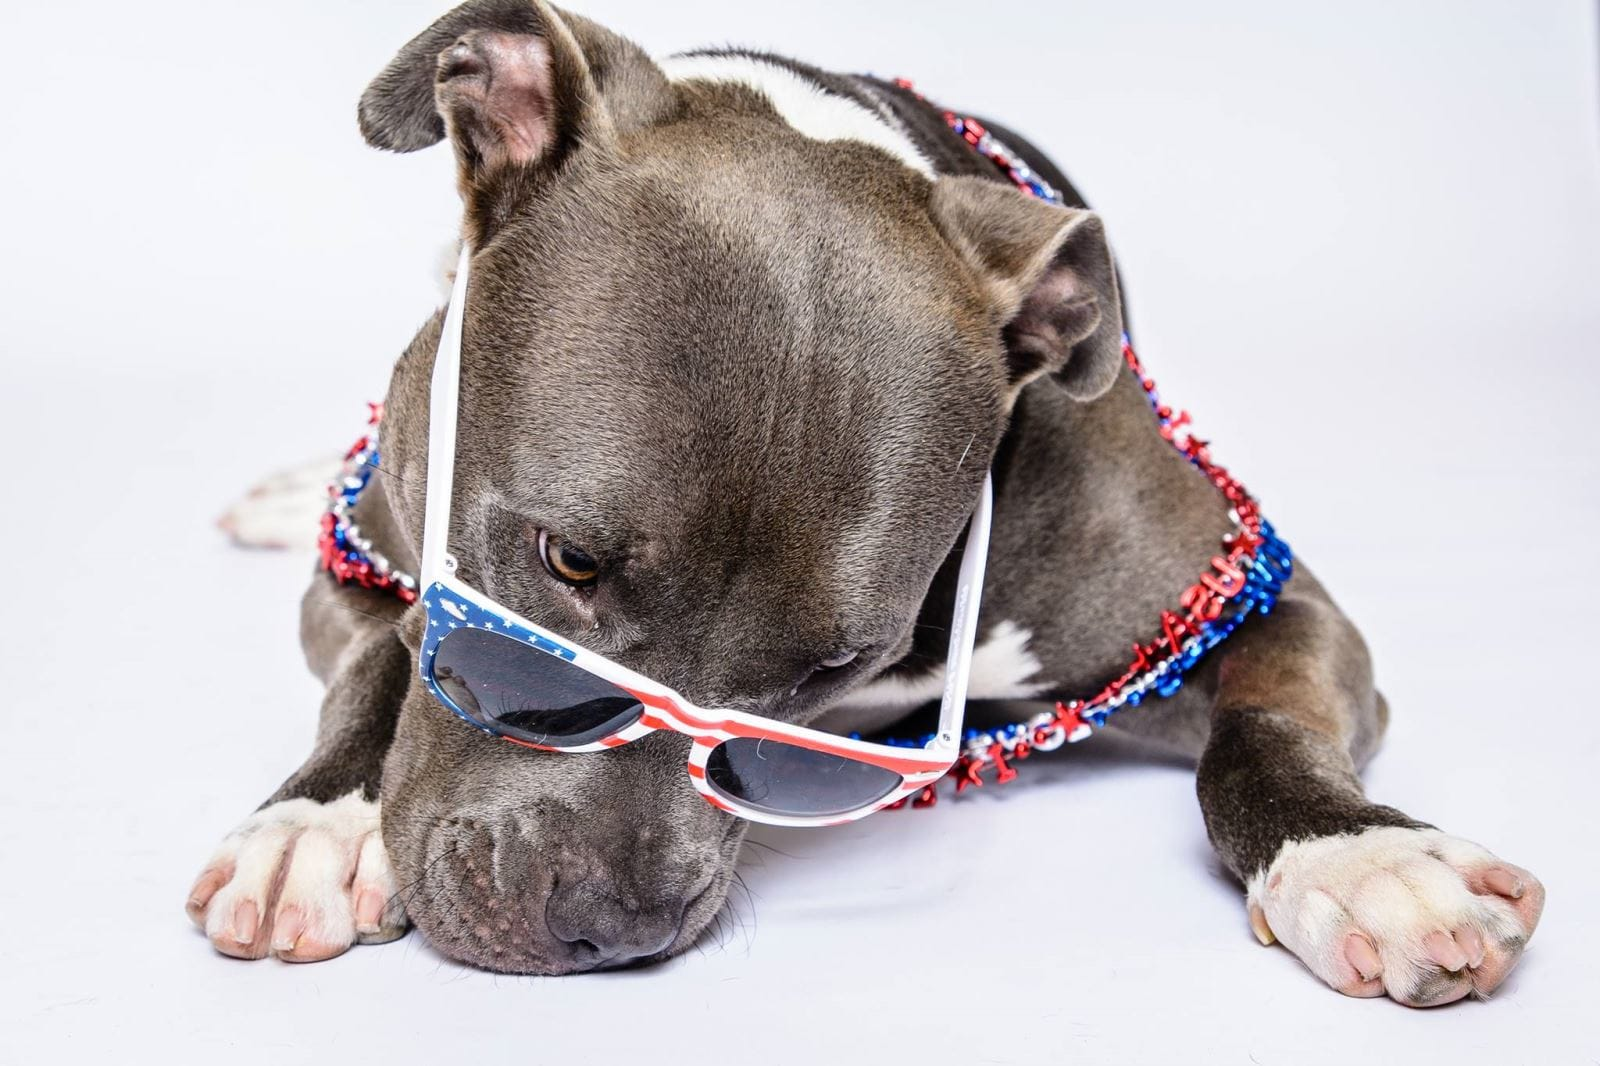 4th of July dog